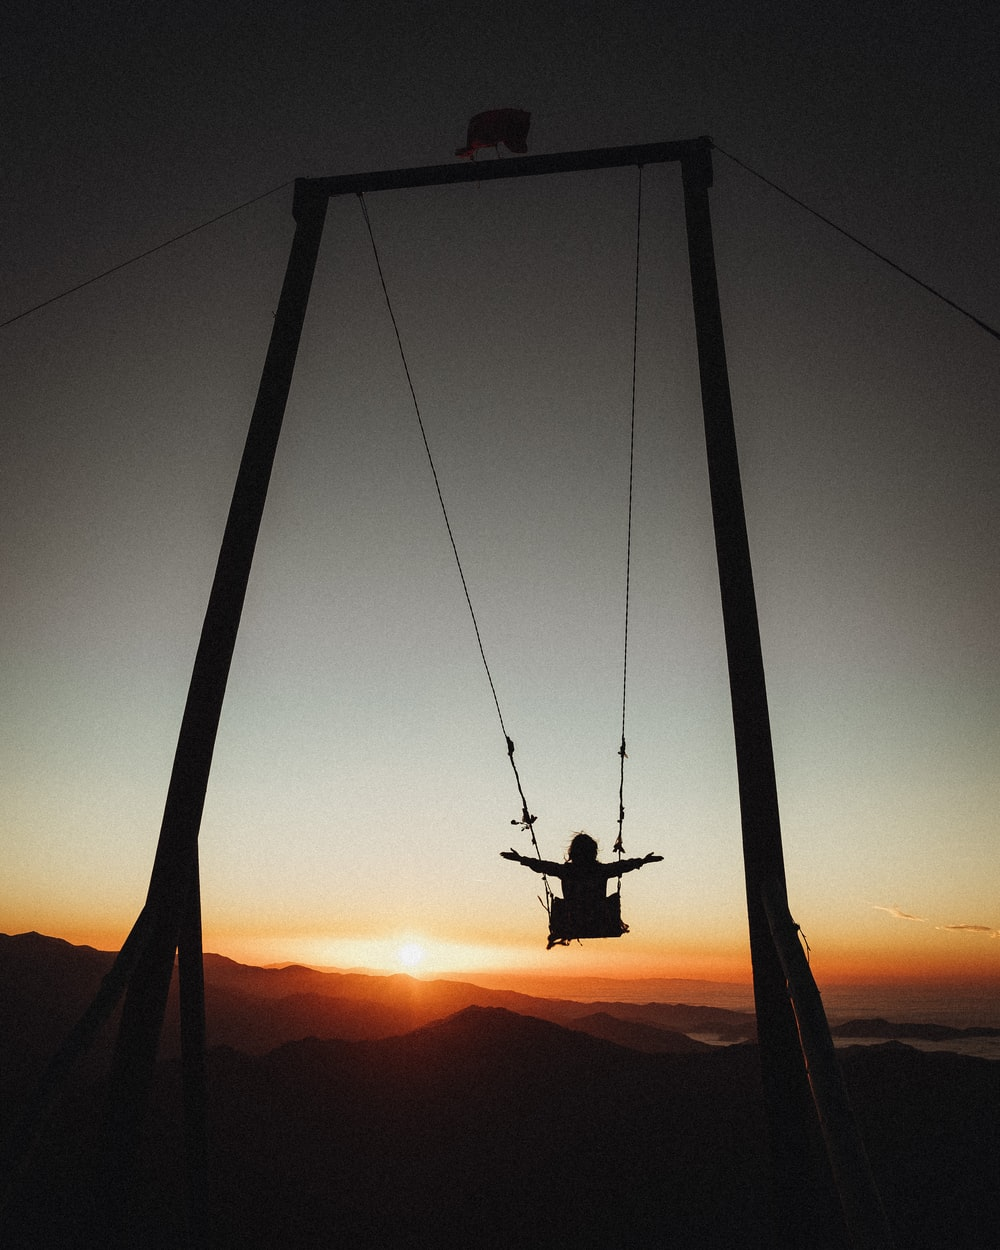 silhouette of person riding on swing during sunset